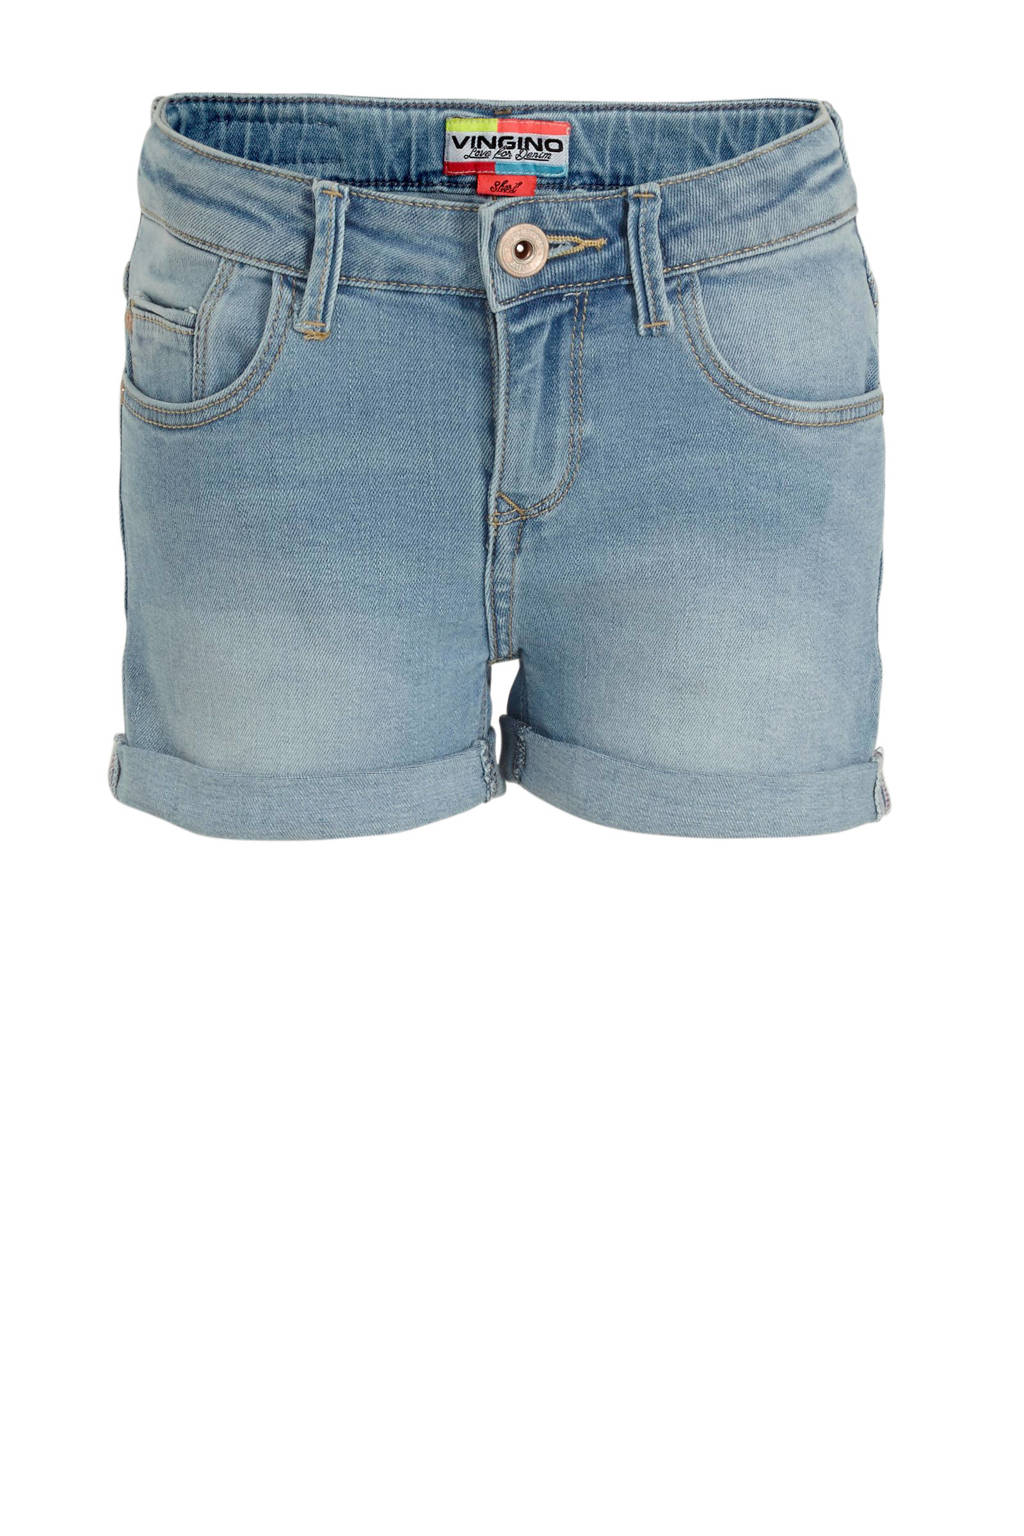 Vingino jeans short Daizy light indigo, Light Indigo